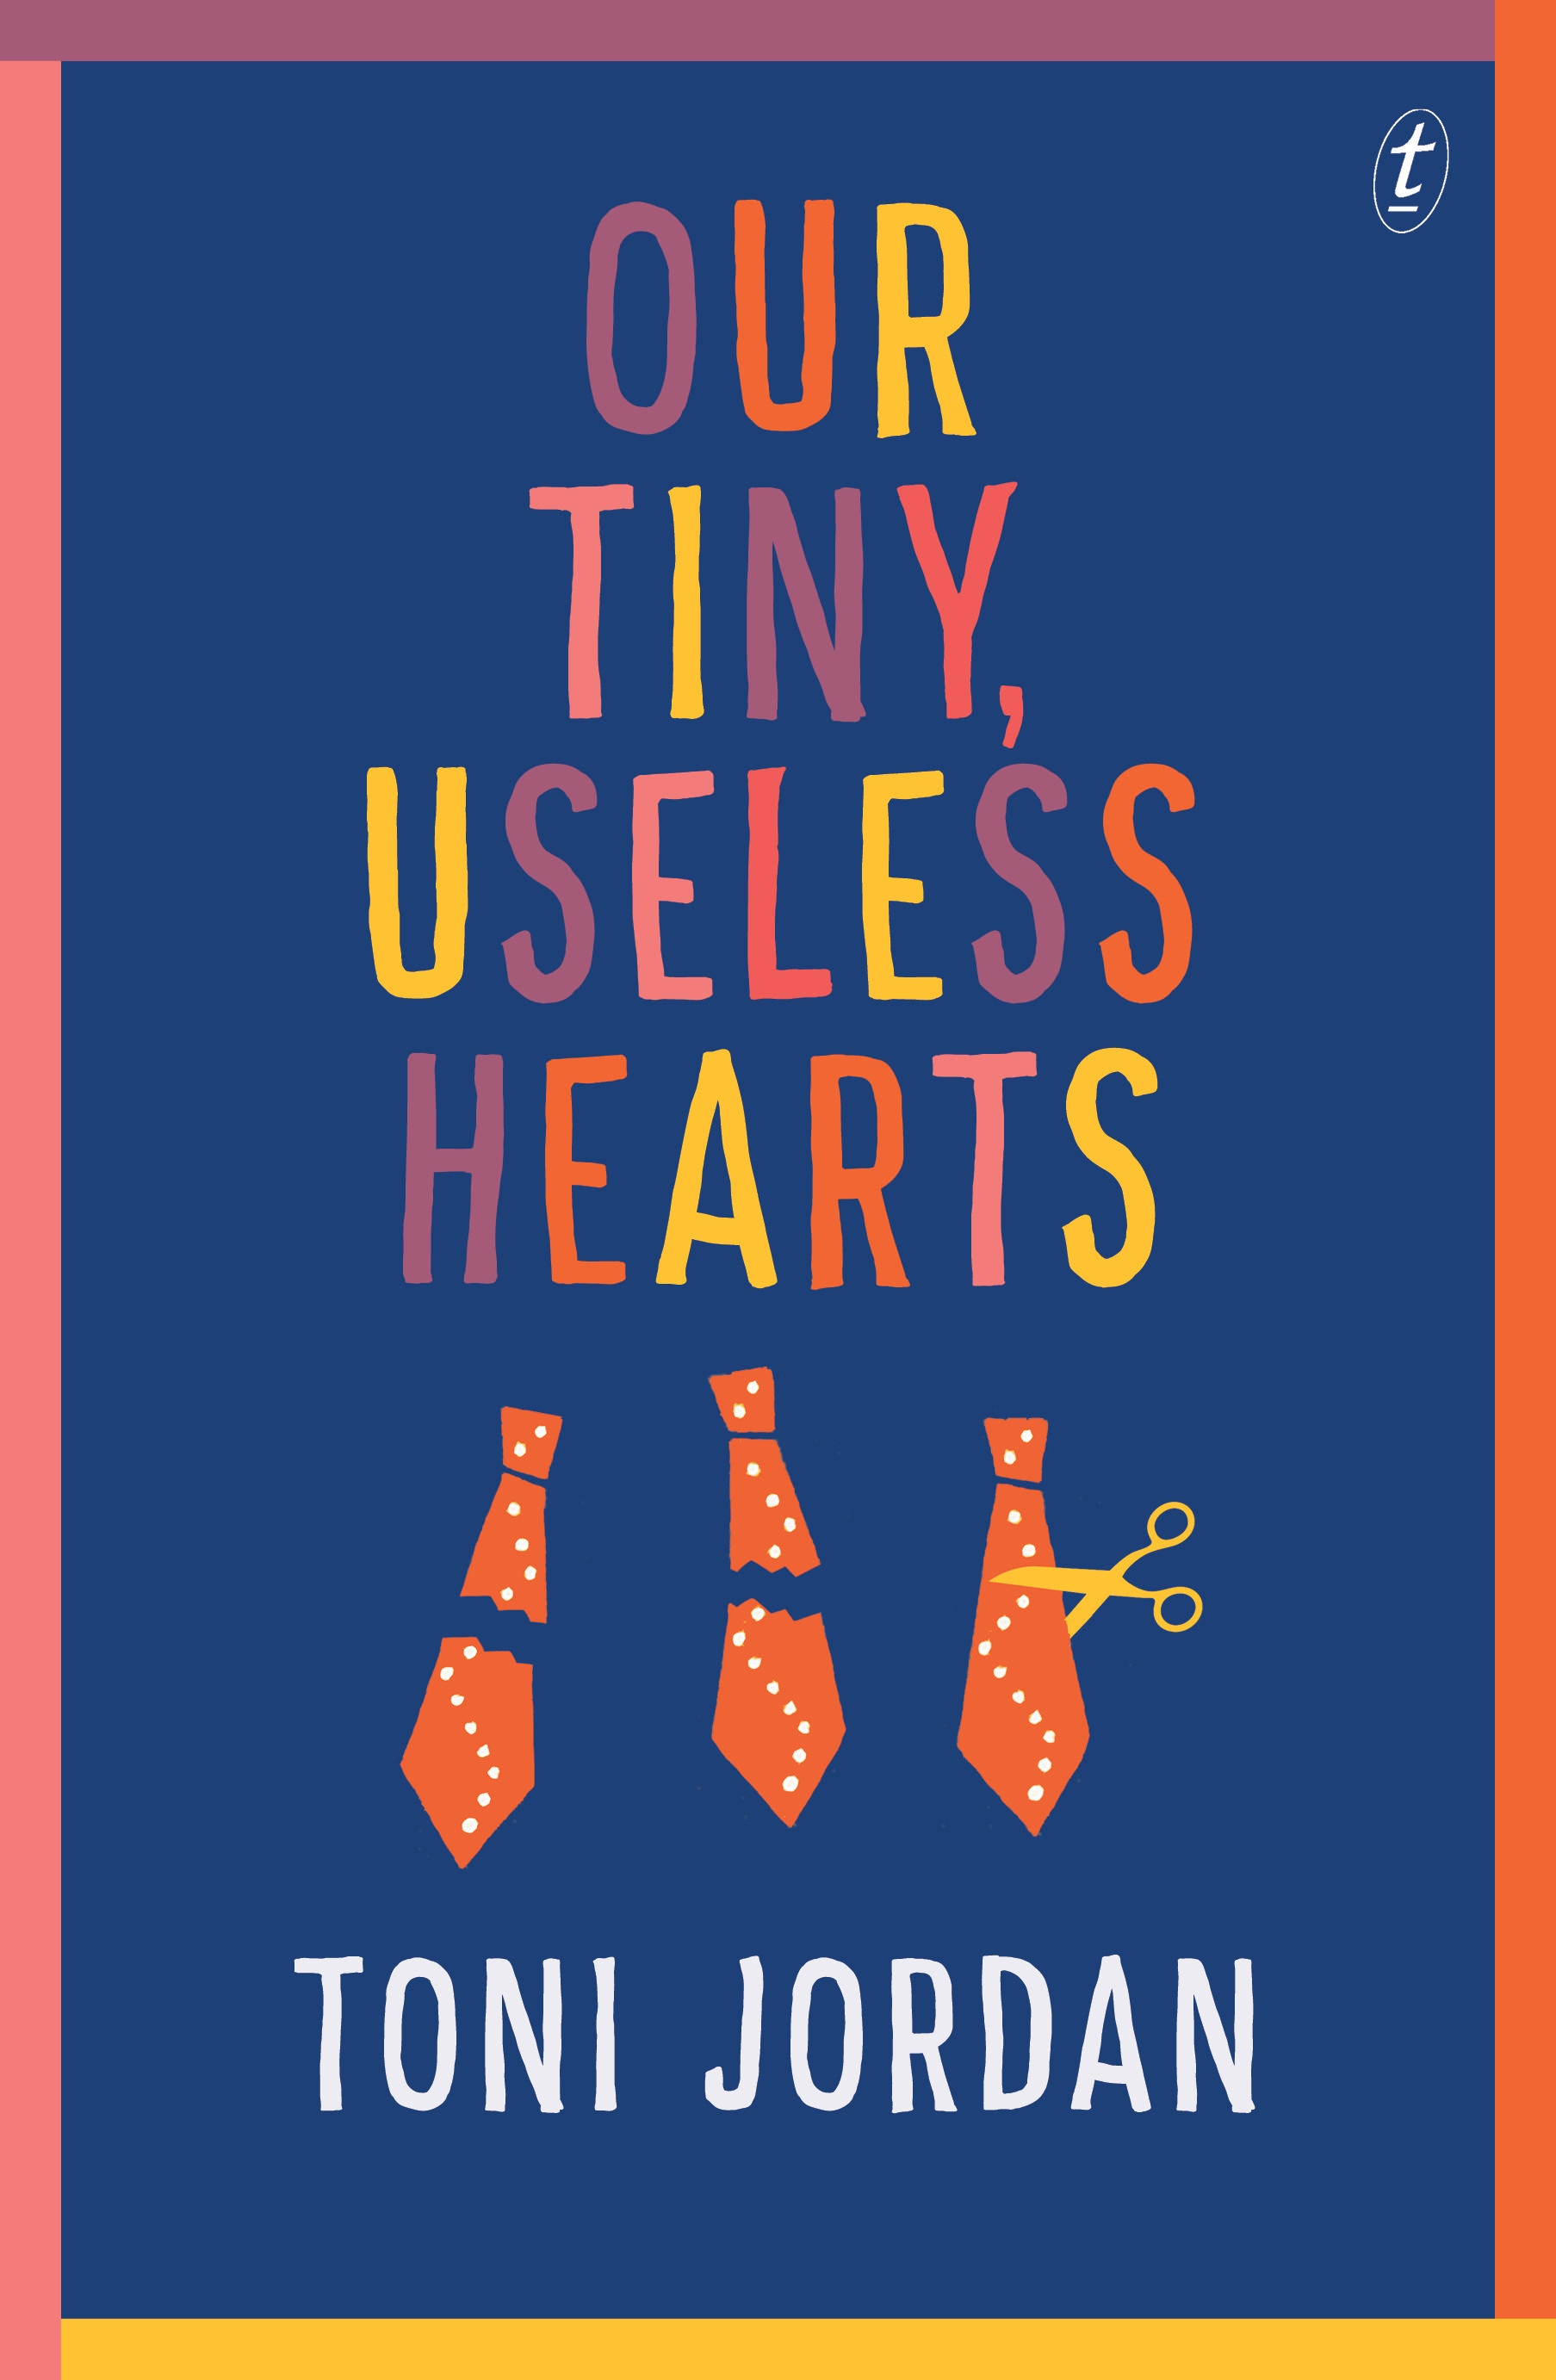 Our Tiny, Useless Hearts by Toni Jordan, ISBN: 9781925355451